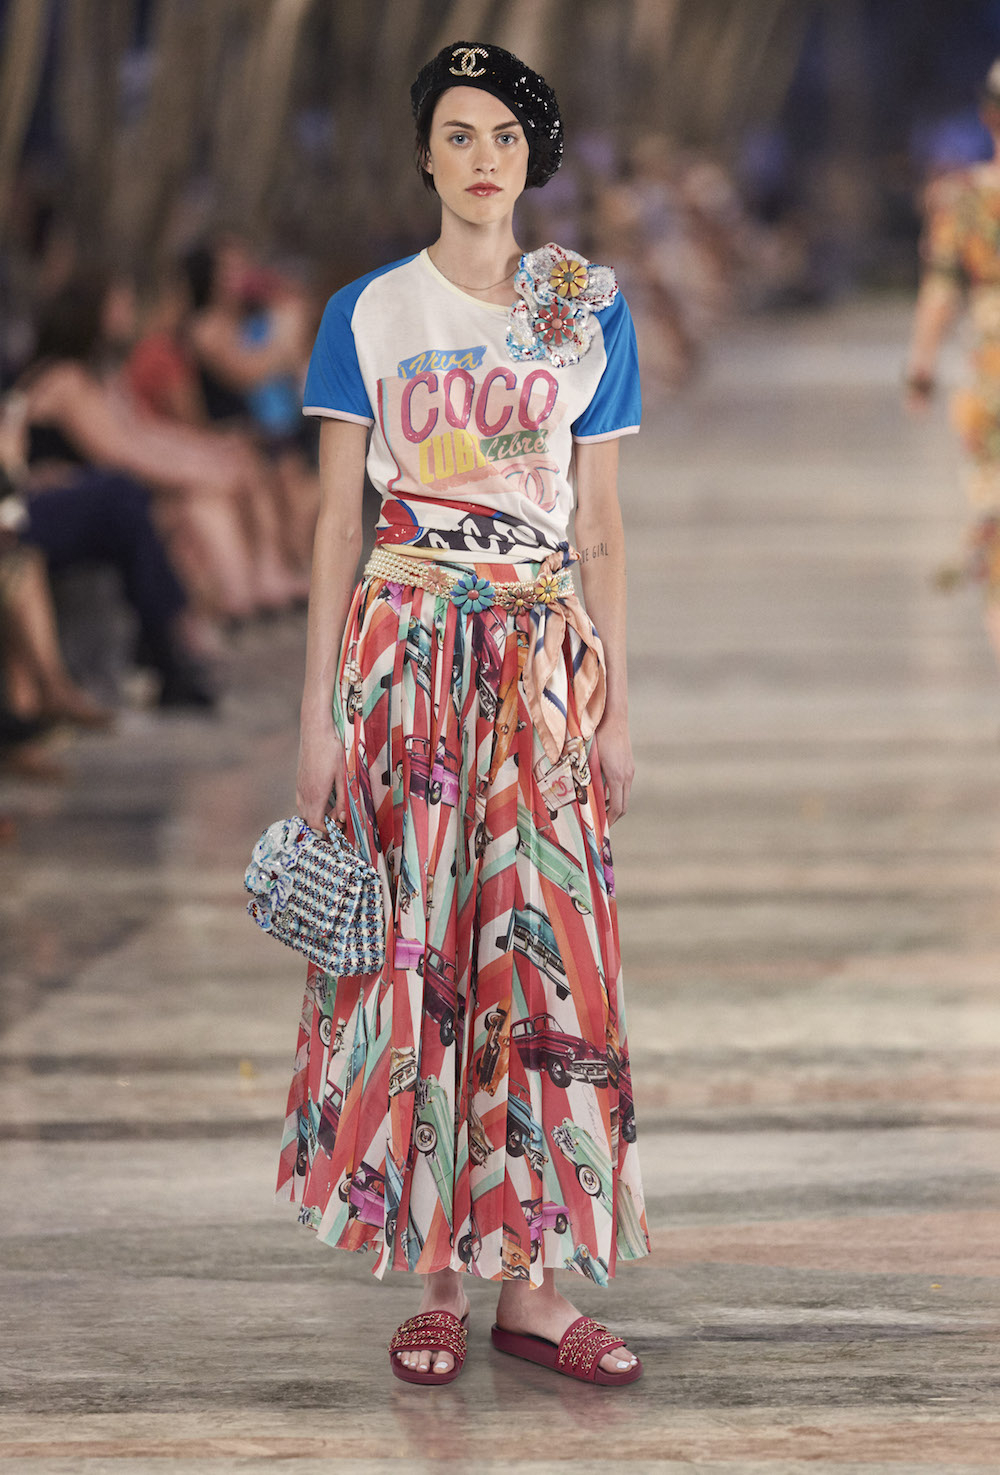 Chanel Heads To Cuba With Their Cruise 2016 17 Collection Lifestyleasia Singapore